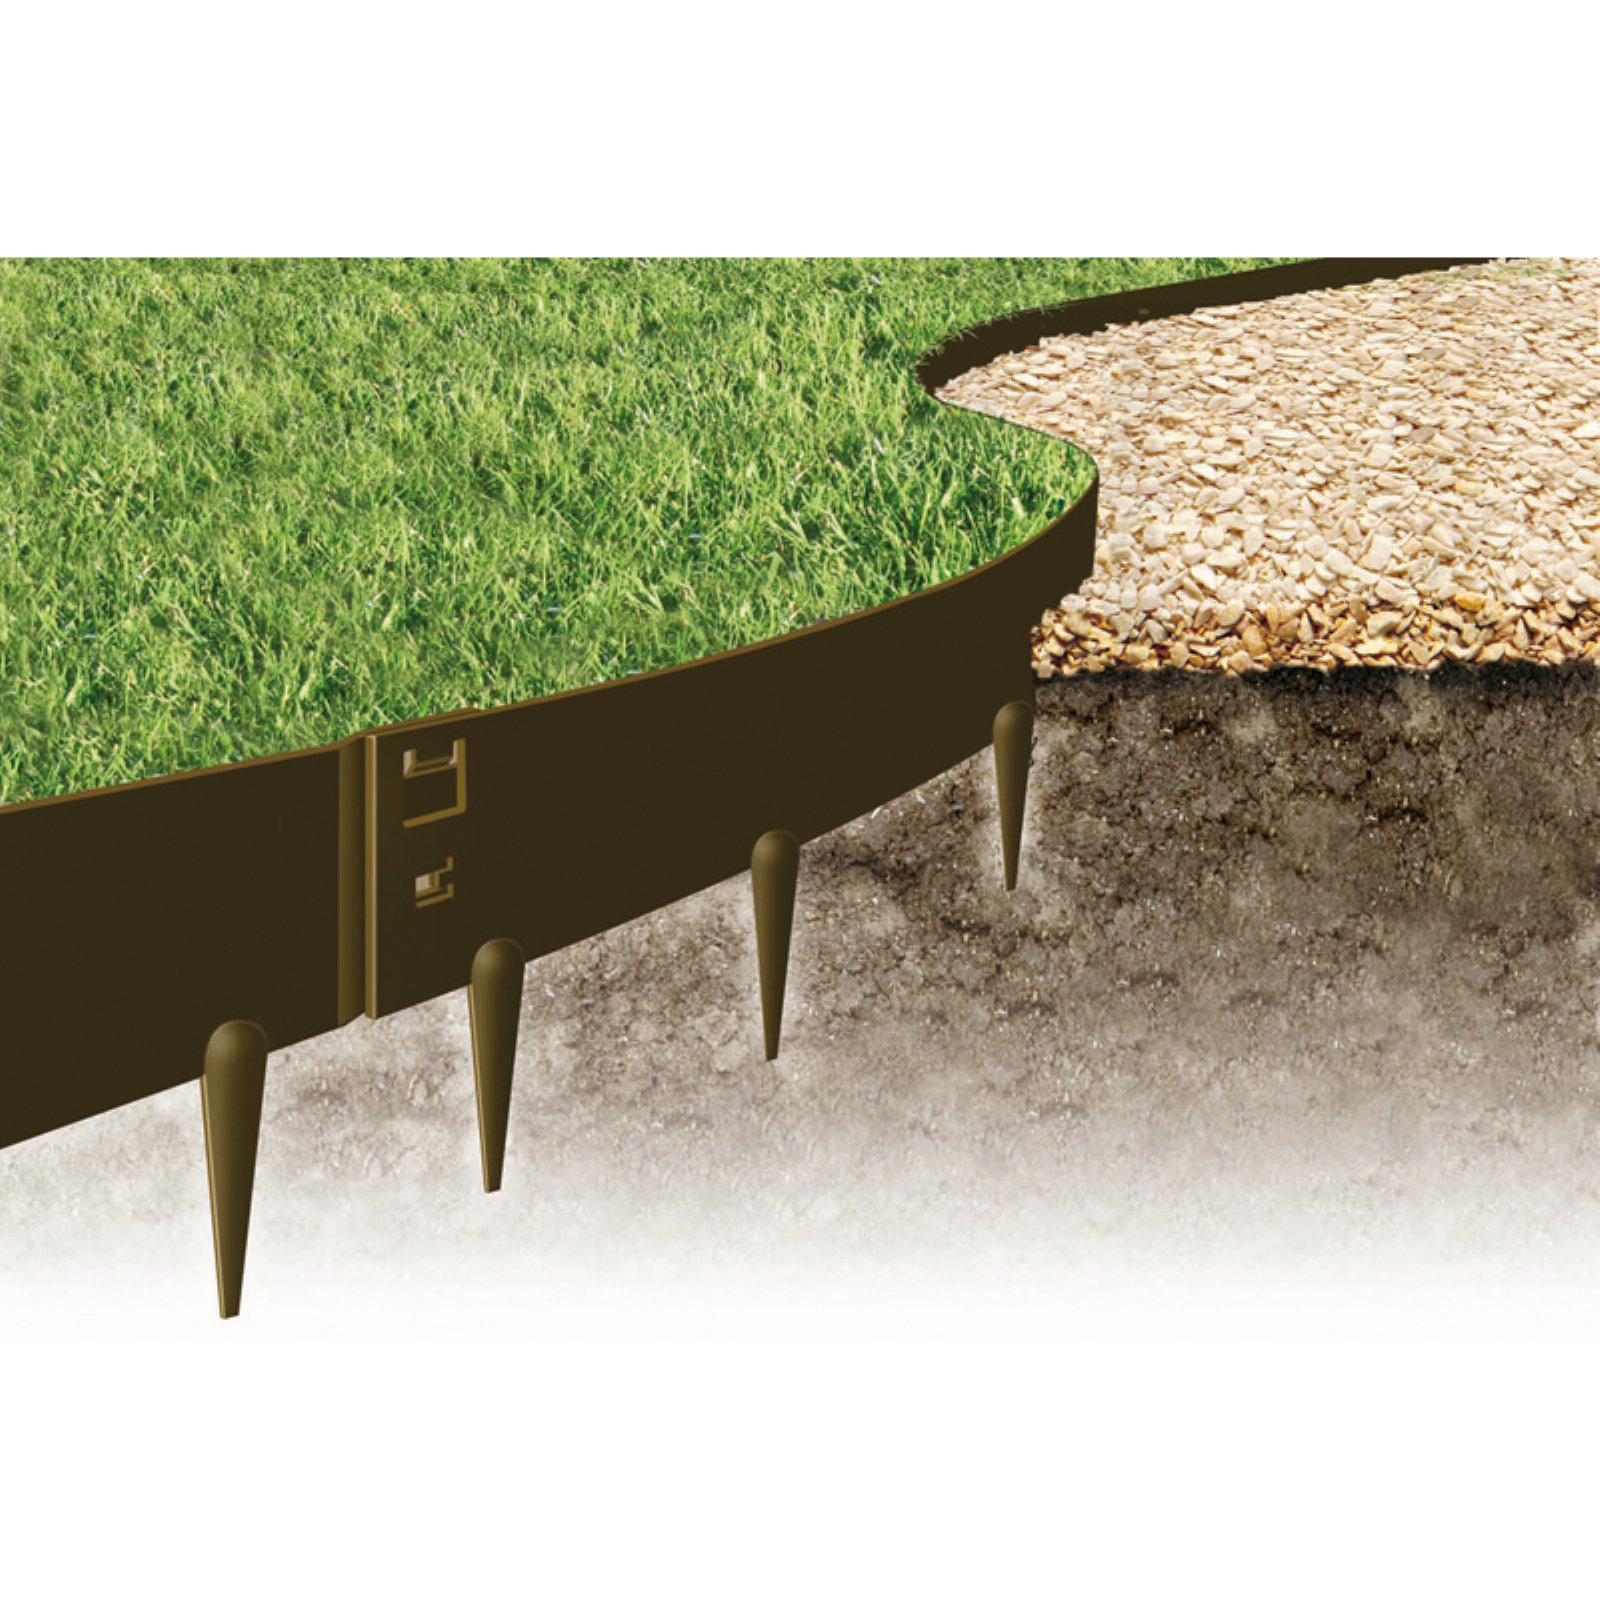 EverEdge 16.25 ft. Lawn Edging